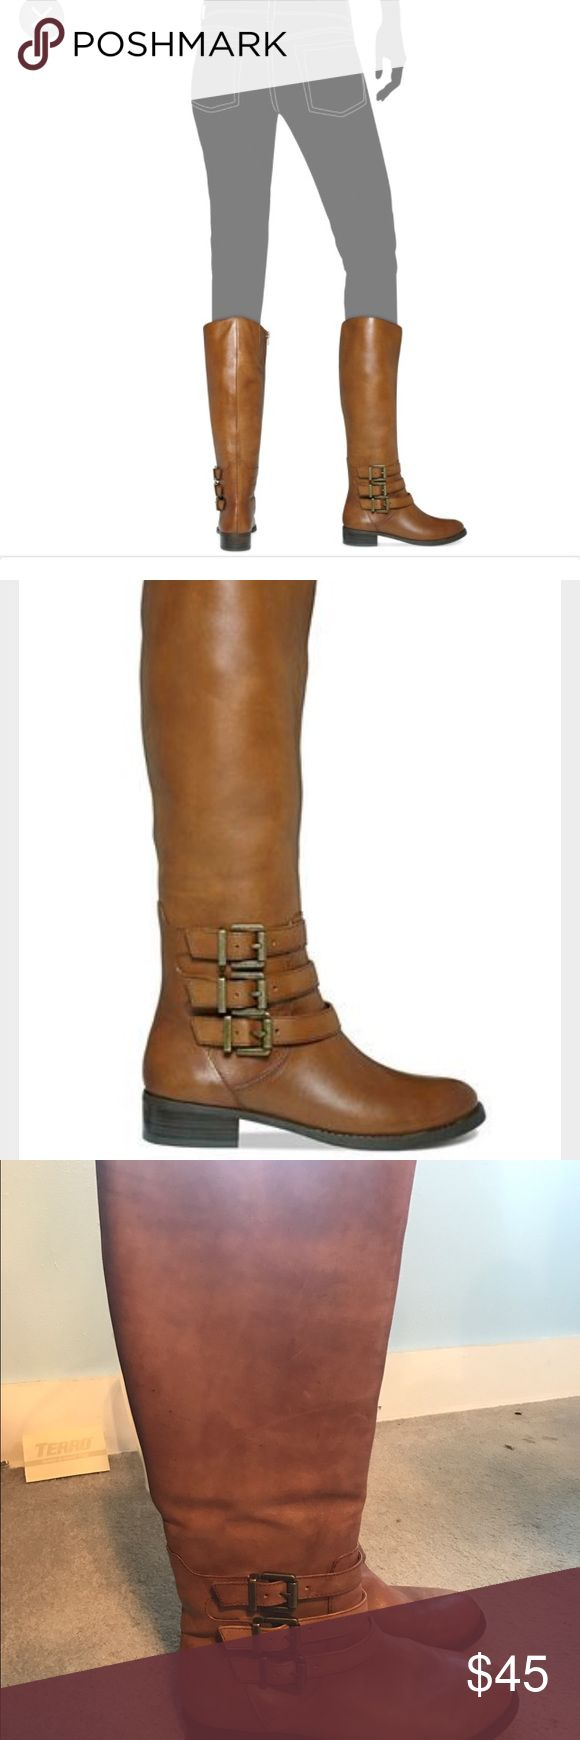 Francy wide calf boots Camel brown wide calf boots. In good condition. Worn only a handful of times. INC International Concepts Shoes